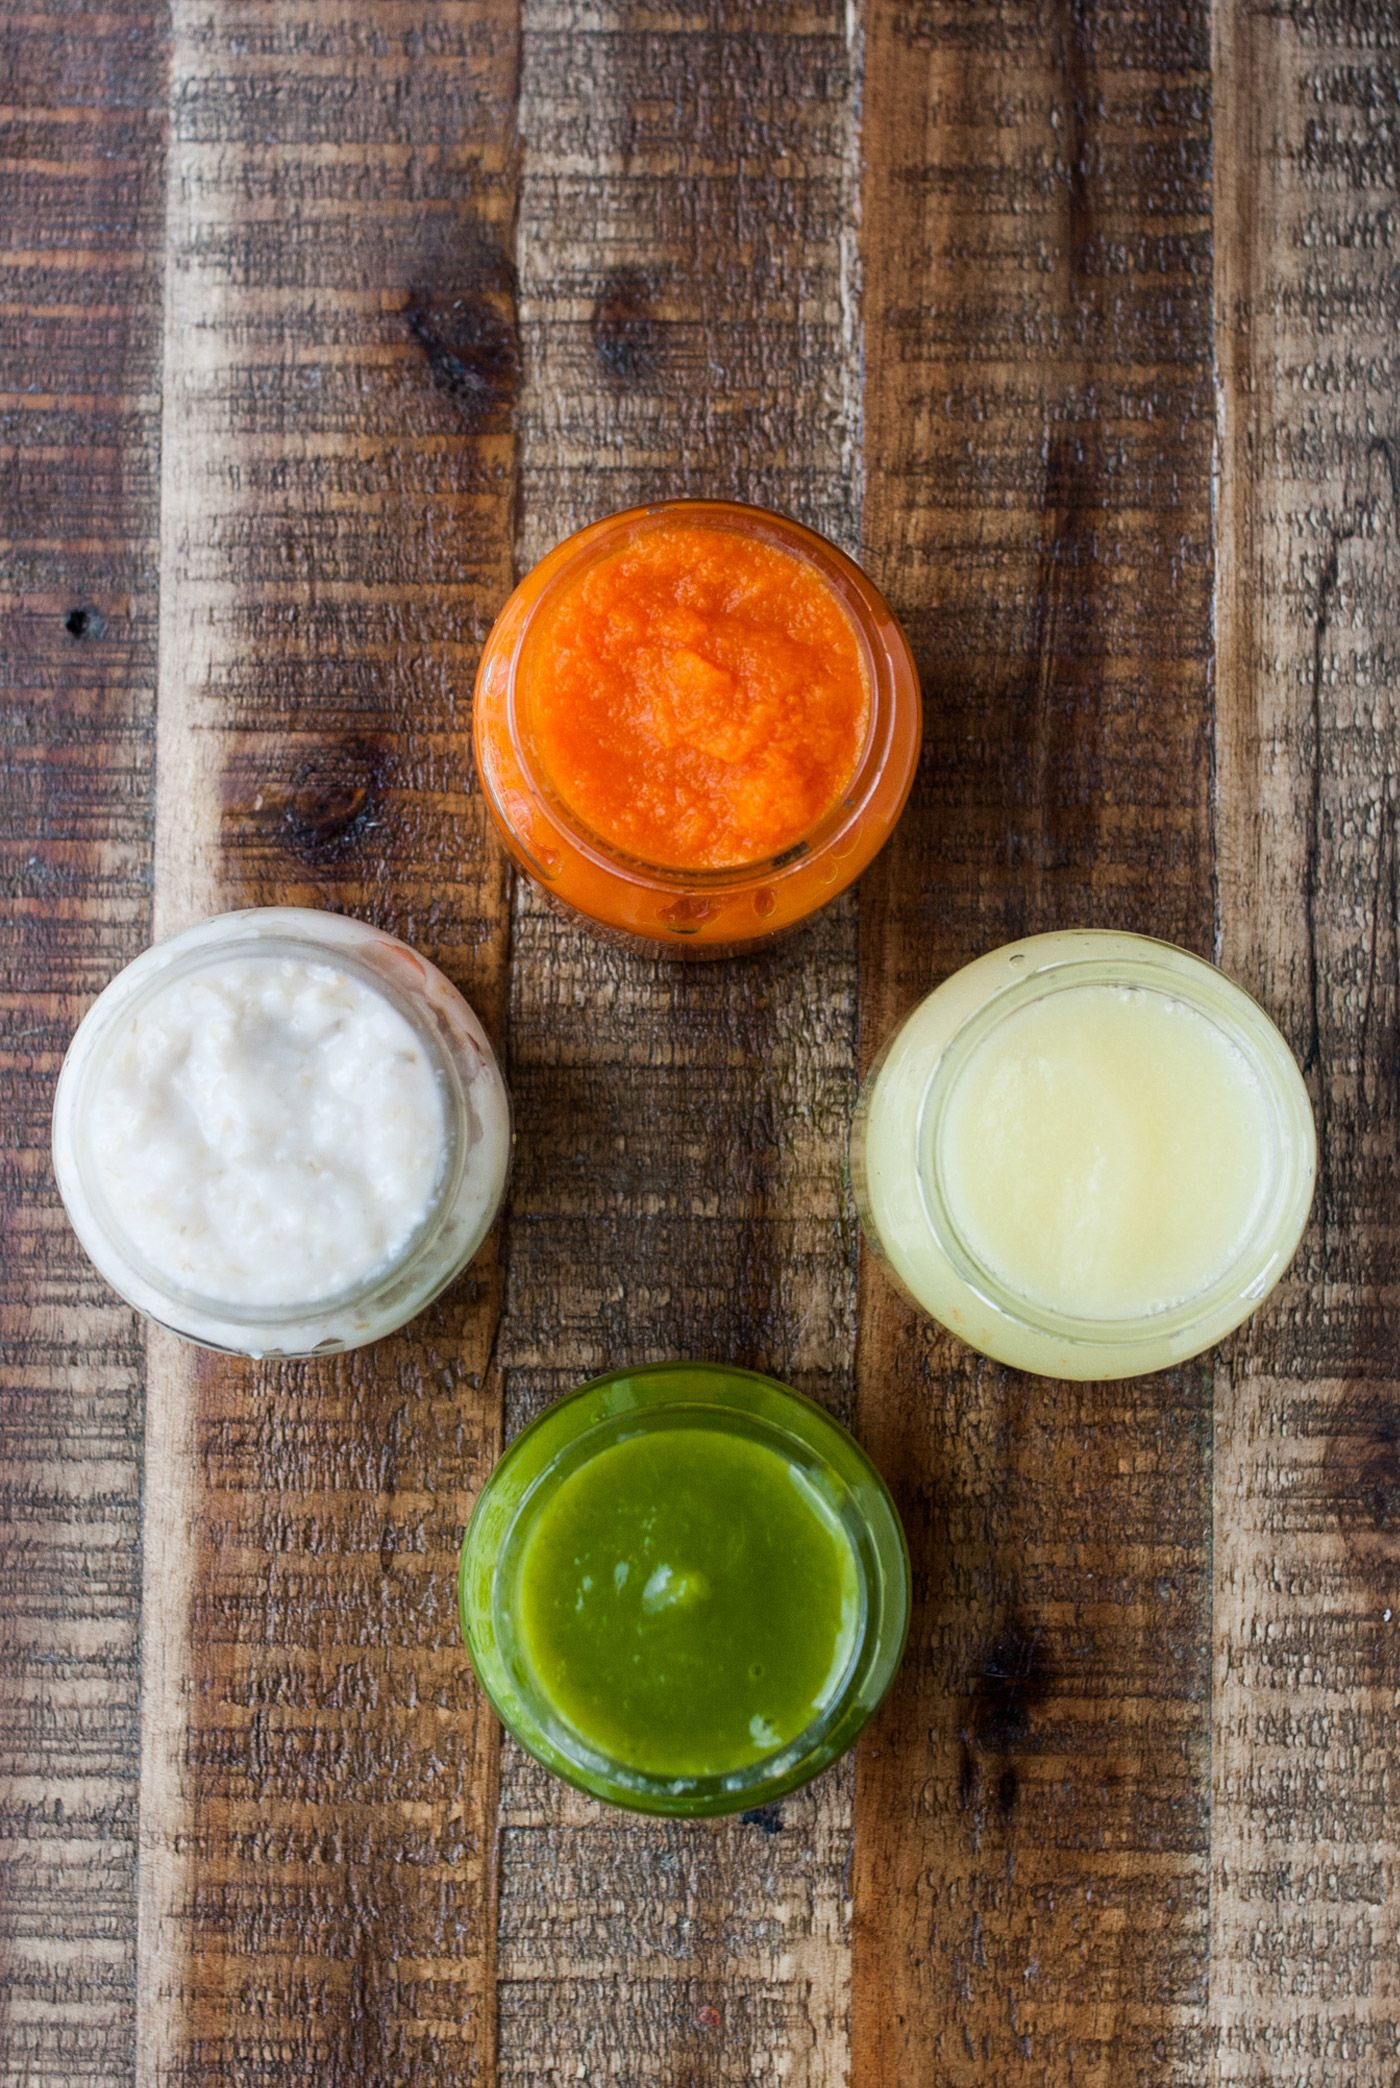 How To Make Your Own Baby Food / Carrots, Peas, Applesauce